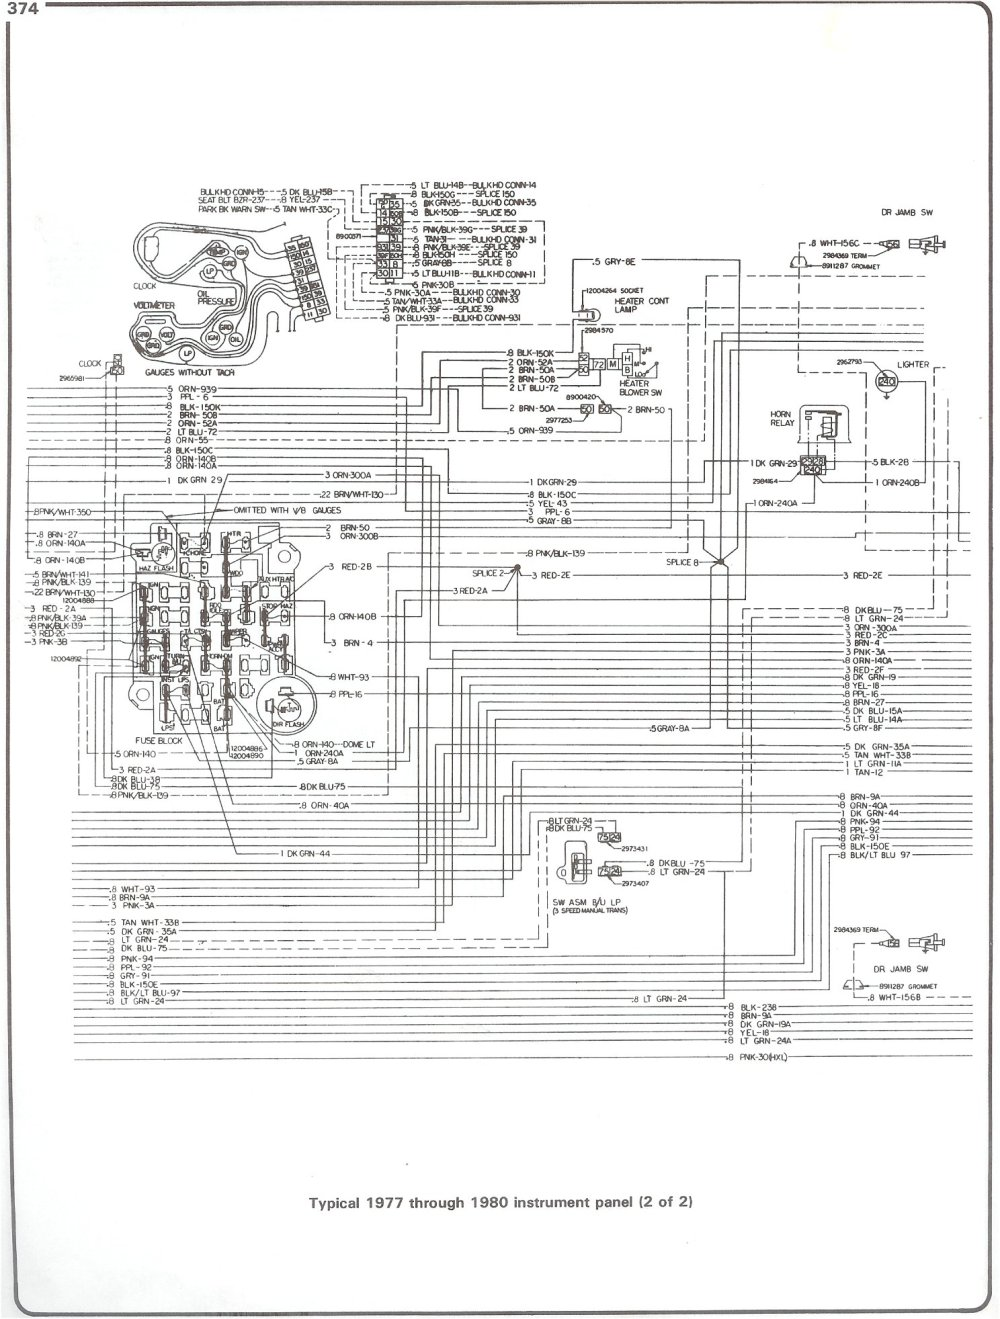 medium resolution of 73 chevy blazer wiring diagram simple wiring schema gm hei module wiring gm hei wiring diagram 1983